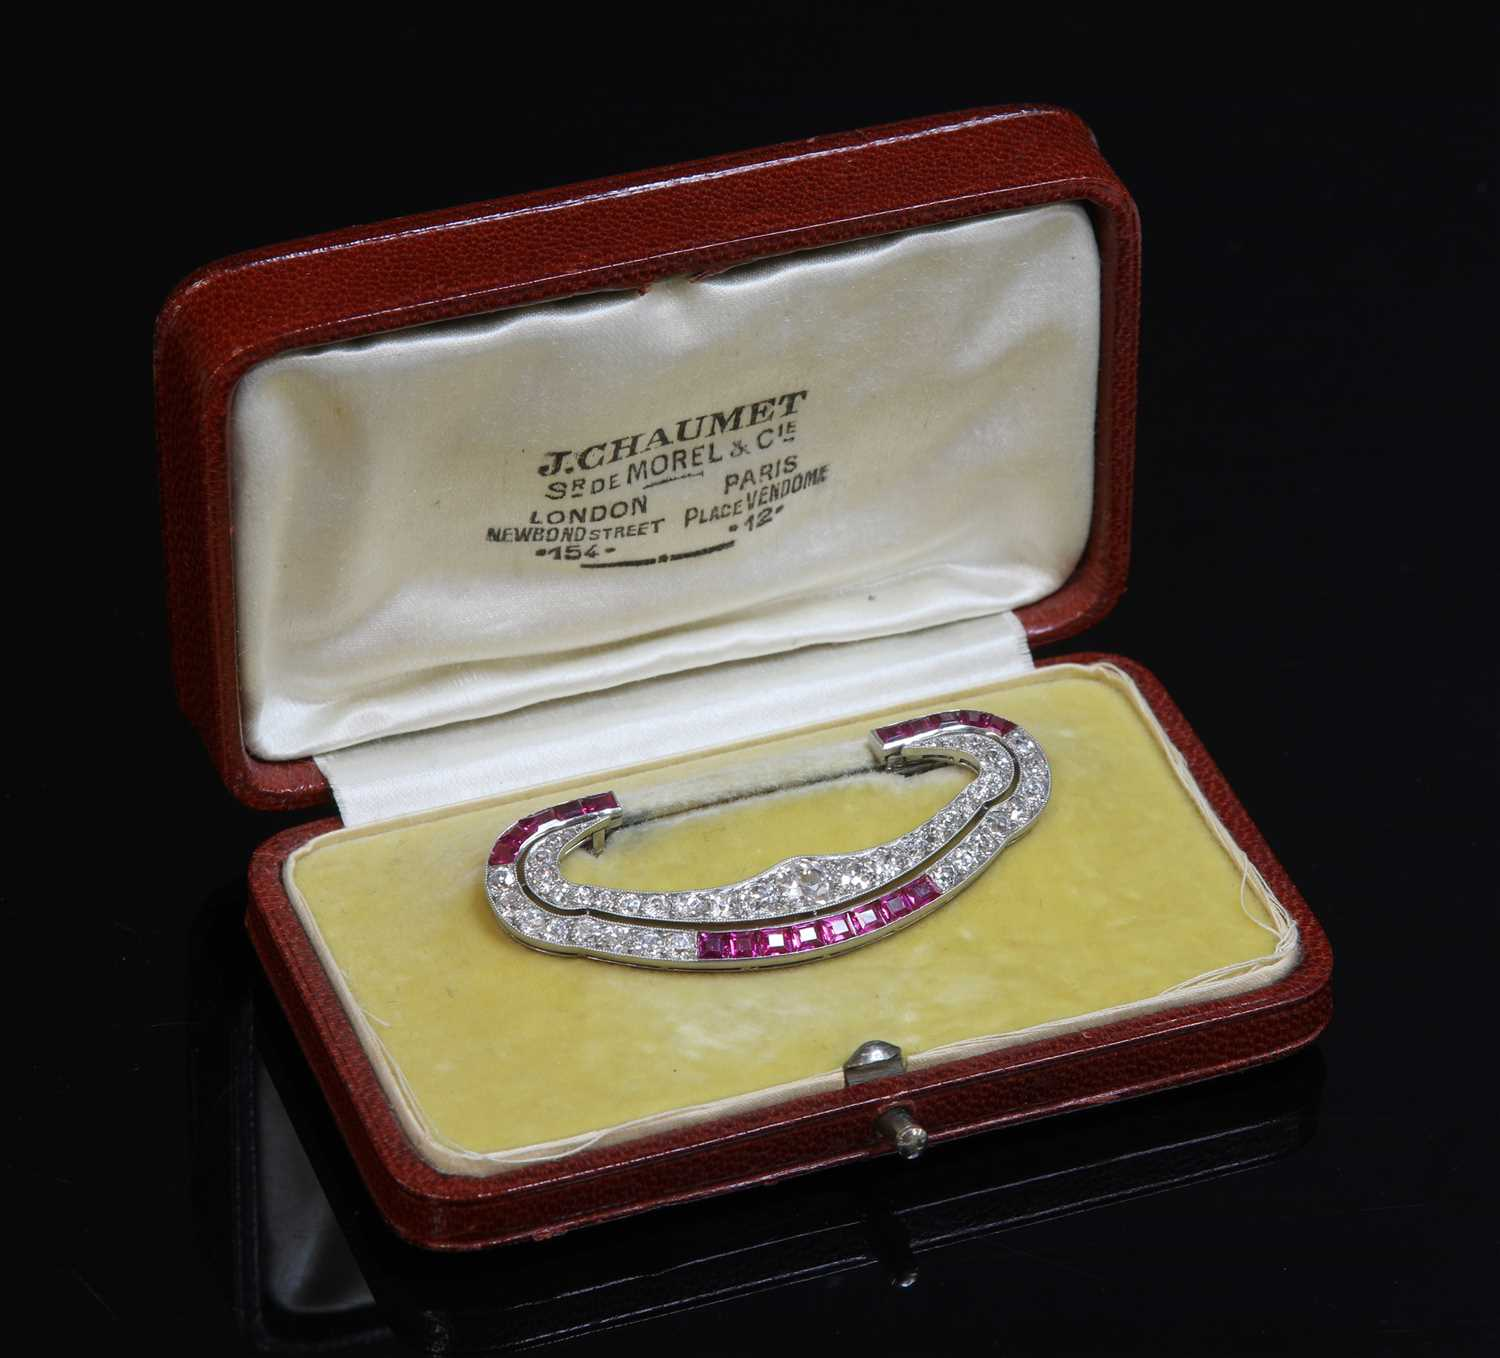 Lot 199 - A cased Art Deco platinum and gold, ruby and diamond brooch attributed to Chaumet c.1930,